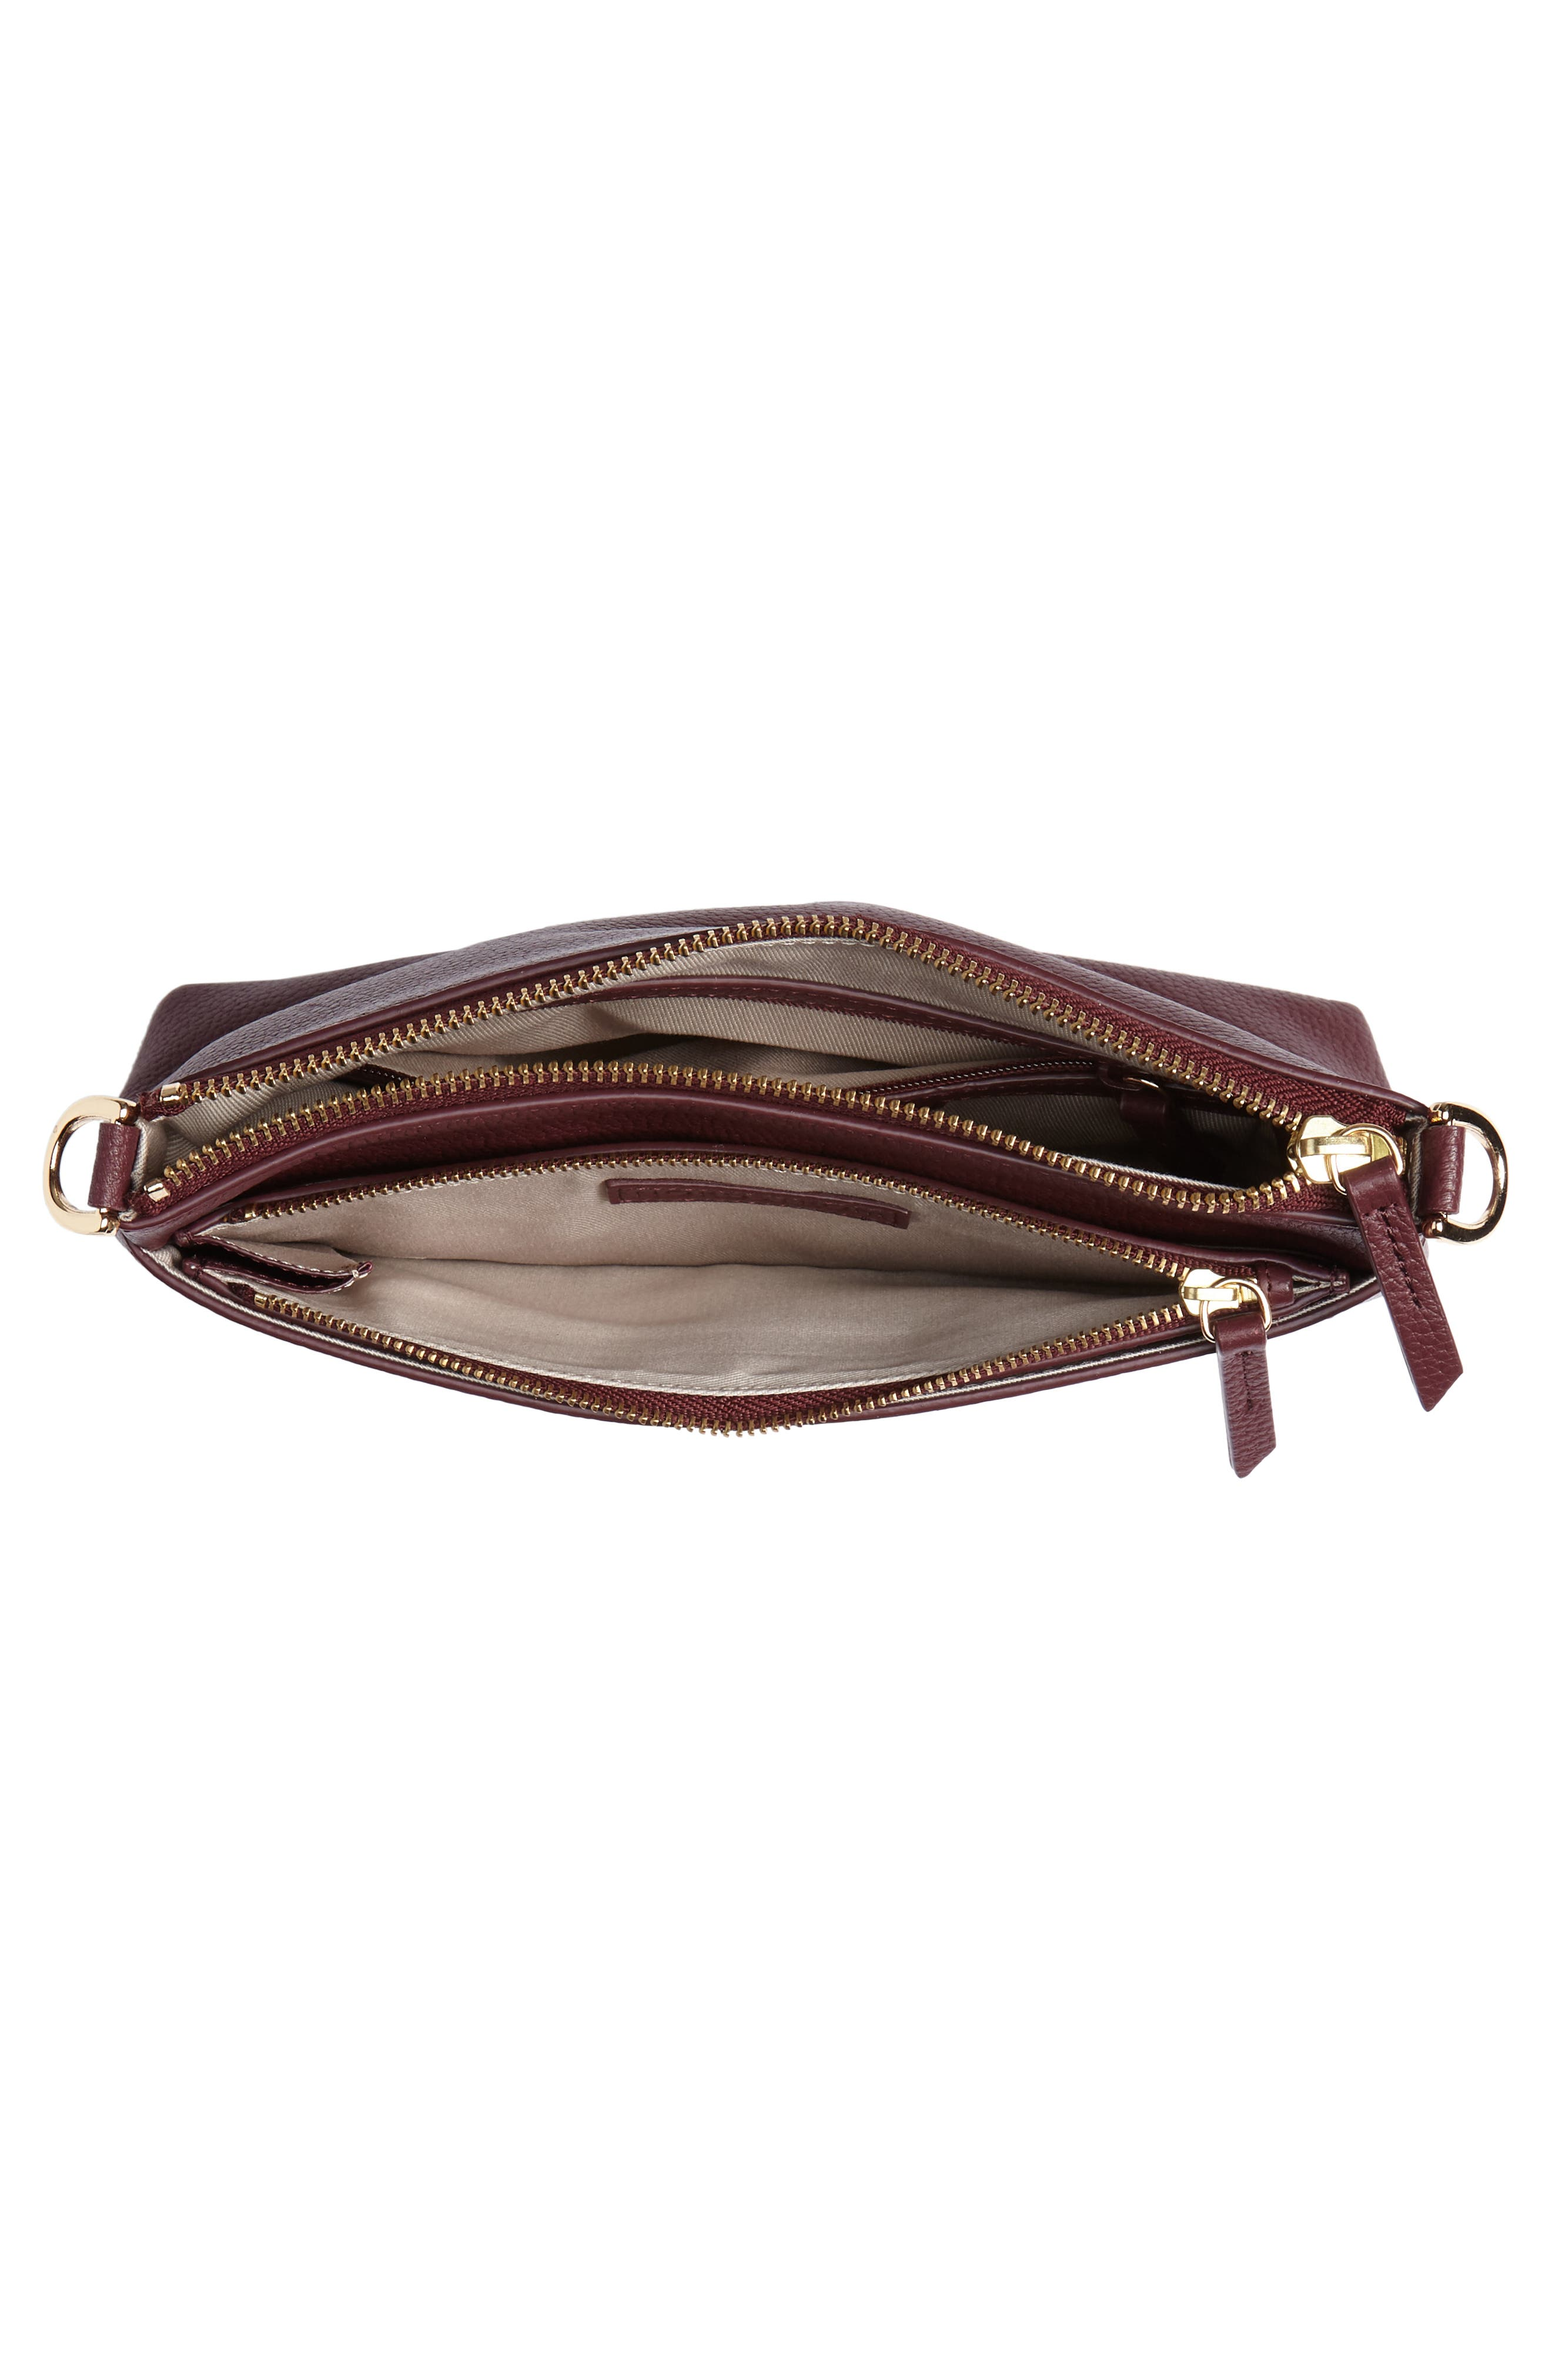 Brixton Convertible Leather Crossbody Bag with Pop-Out Card Holder,                             Alternate thumbnail 5, color,                             Burgundy London